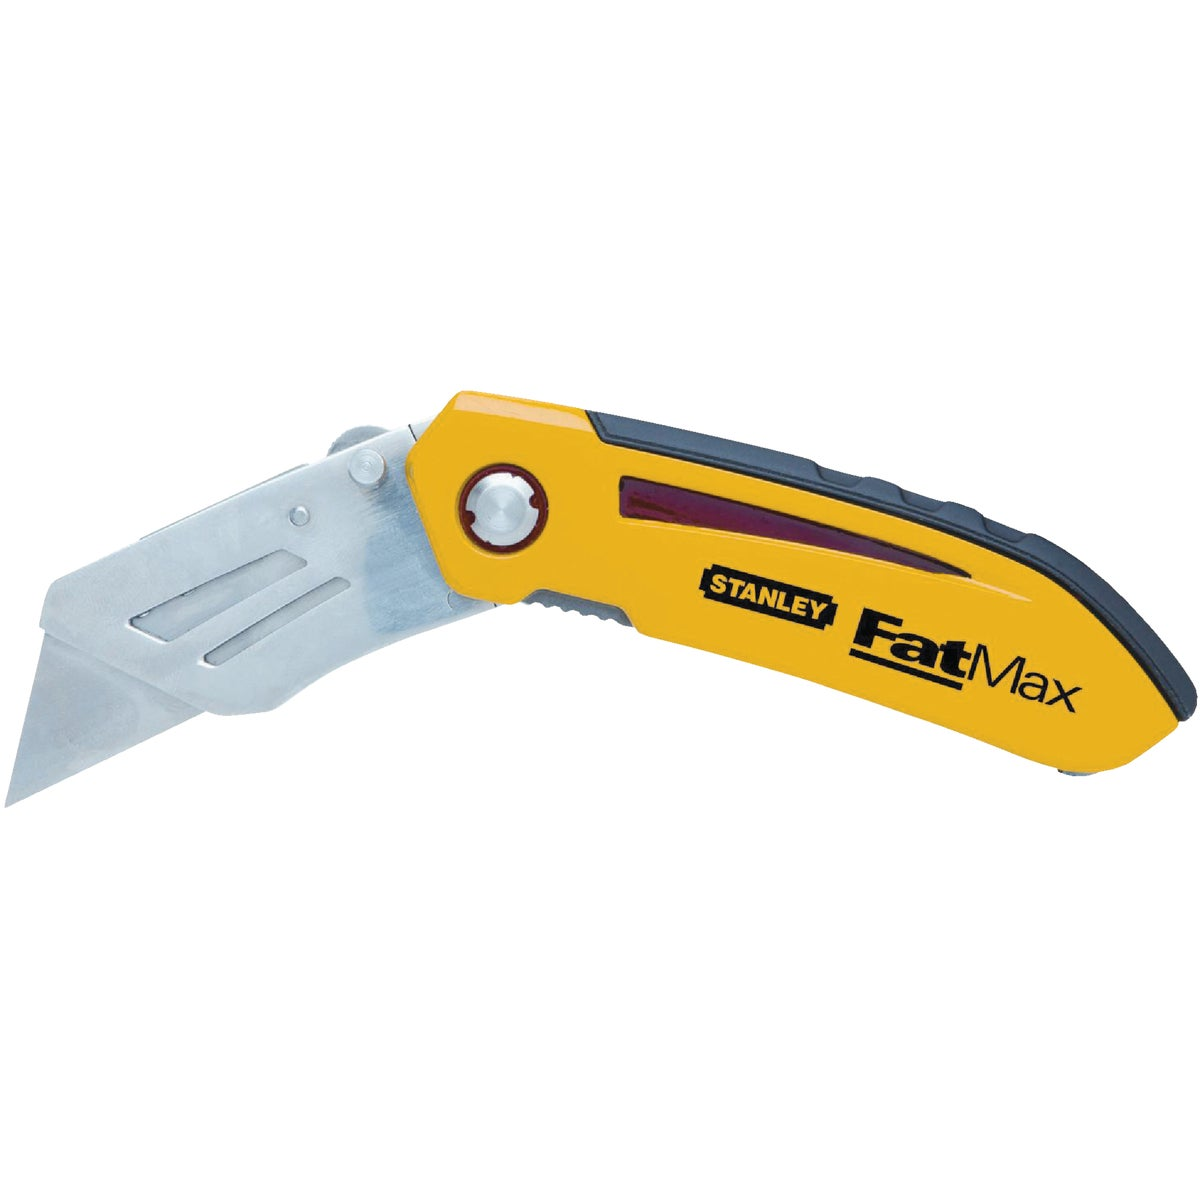 FATMAX FOLDING KNIFE - FMHT10827 by Stanley Tools